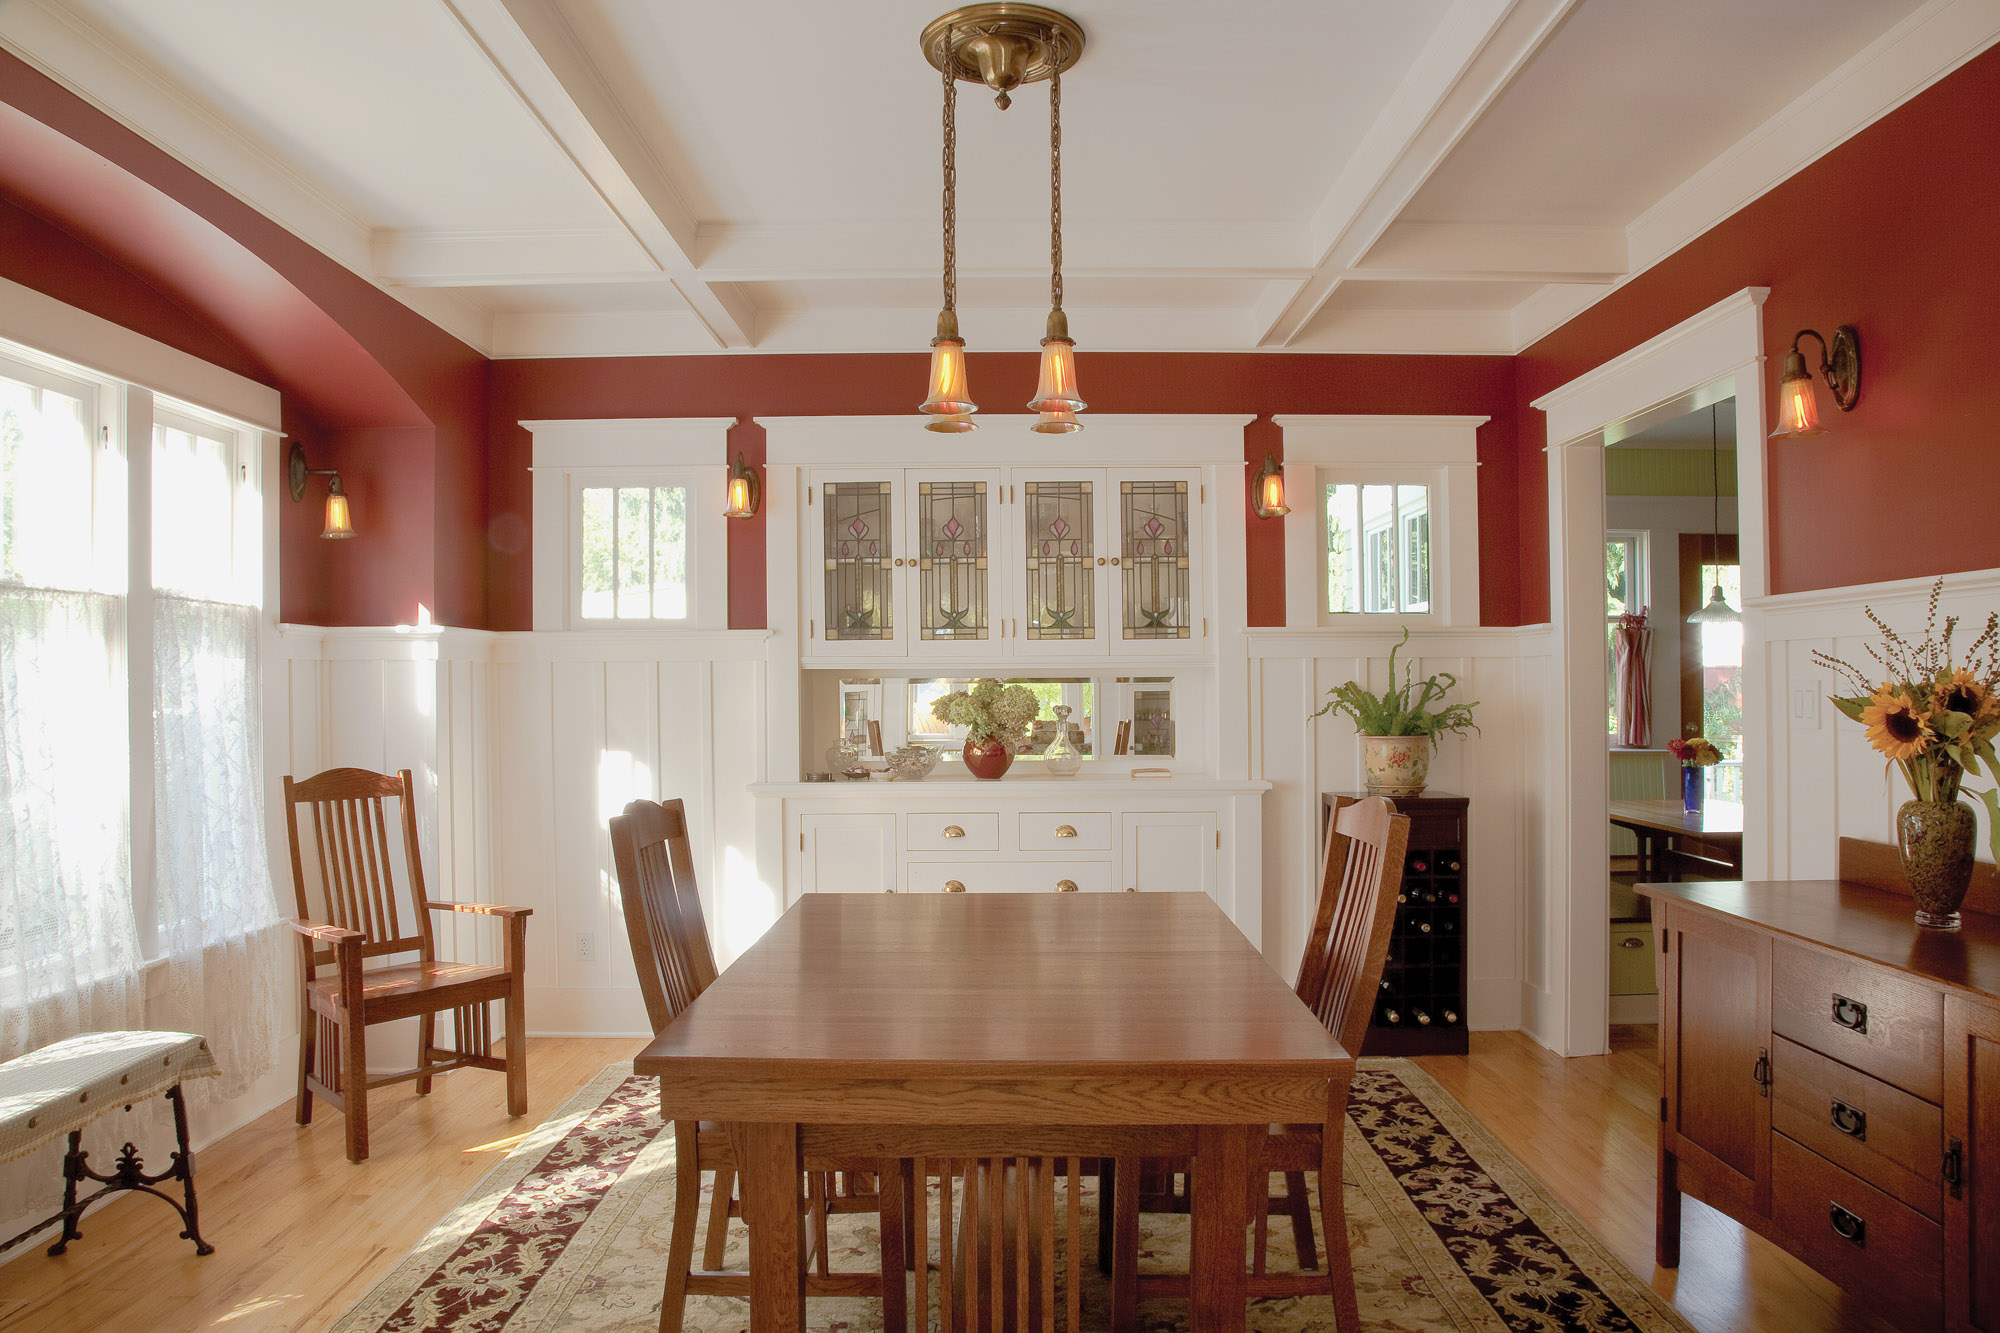 dining room built-in